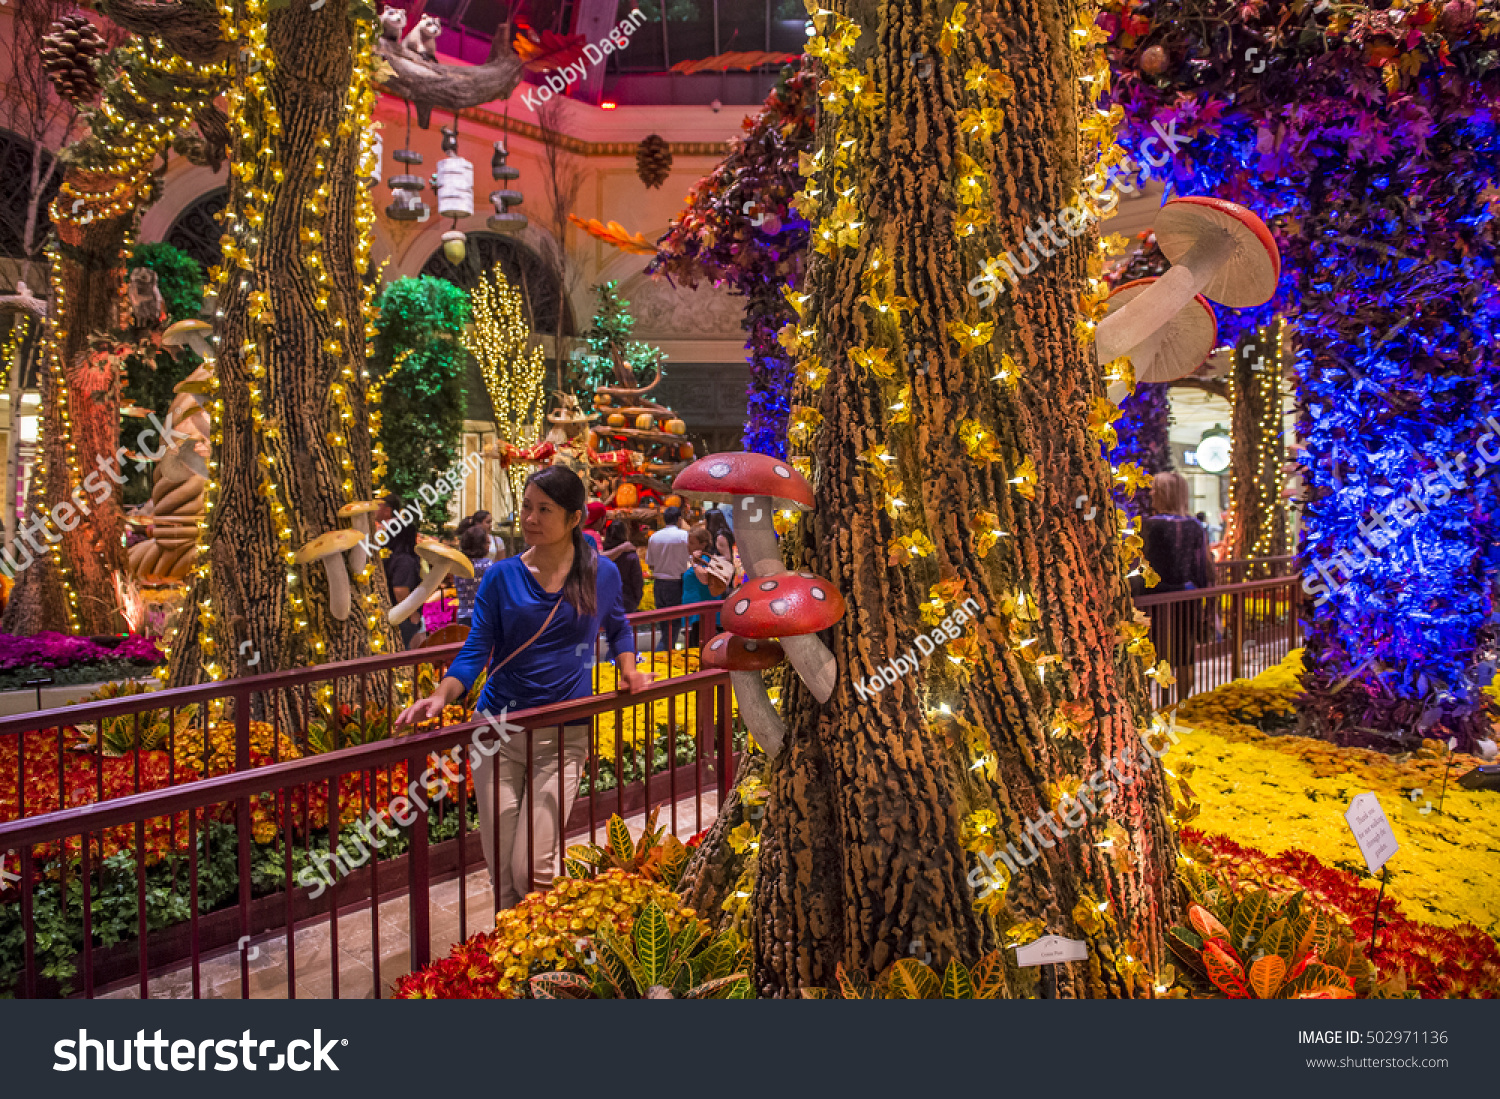 LAS VEGAS - OCT 10 : Fall season in Bellagio Hotel Conservatory ...